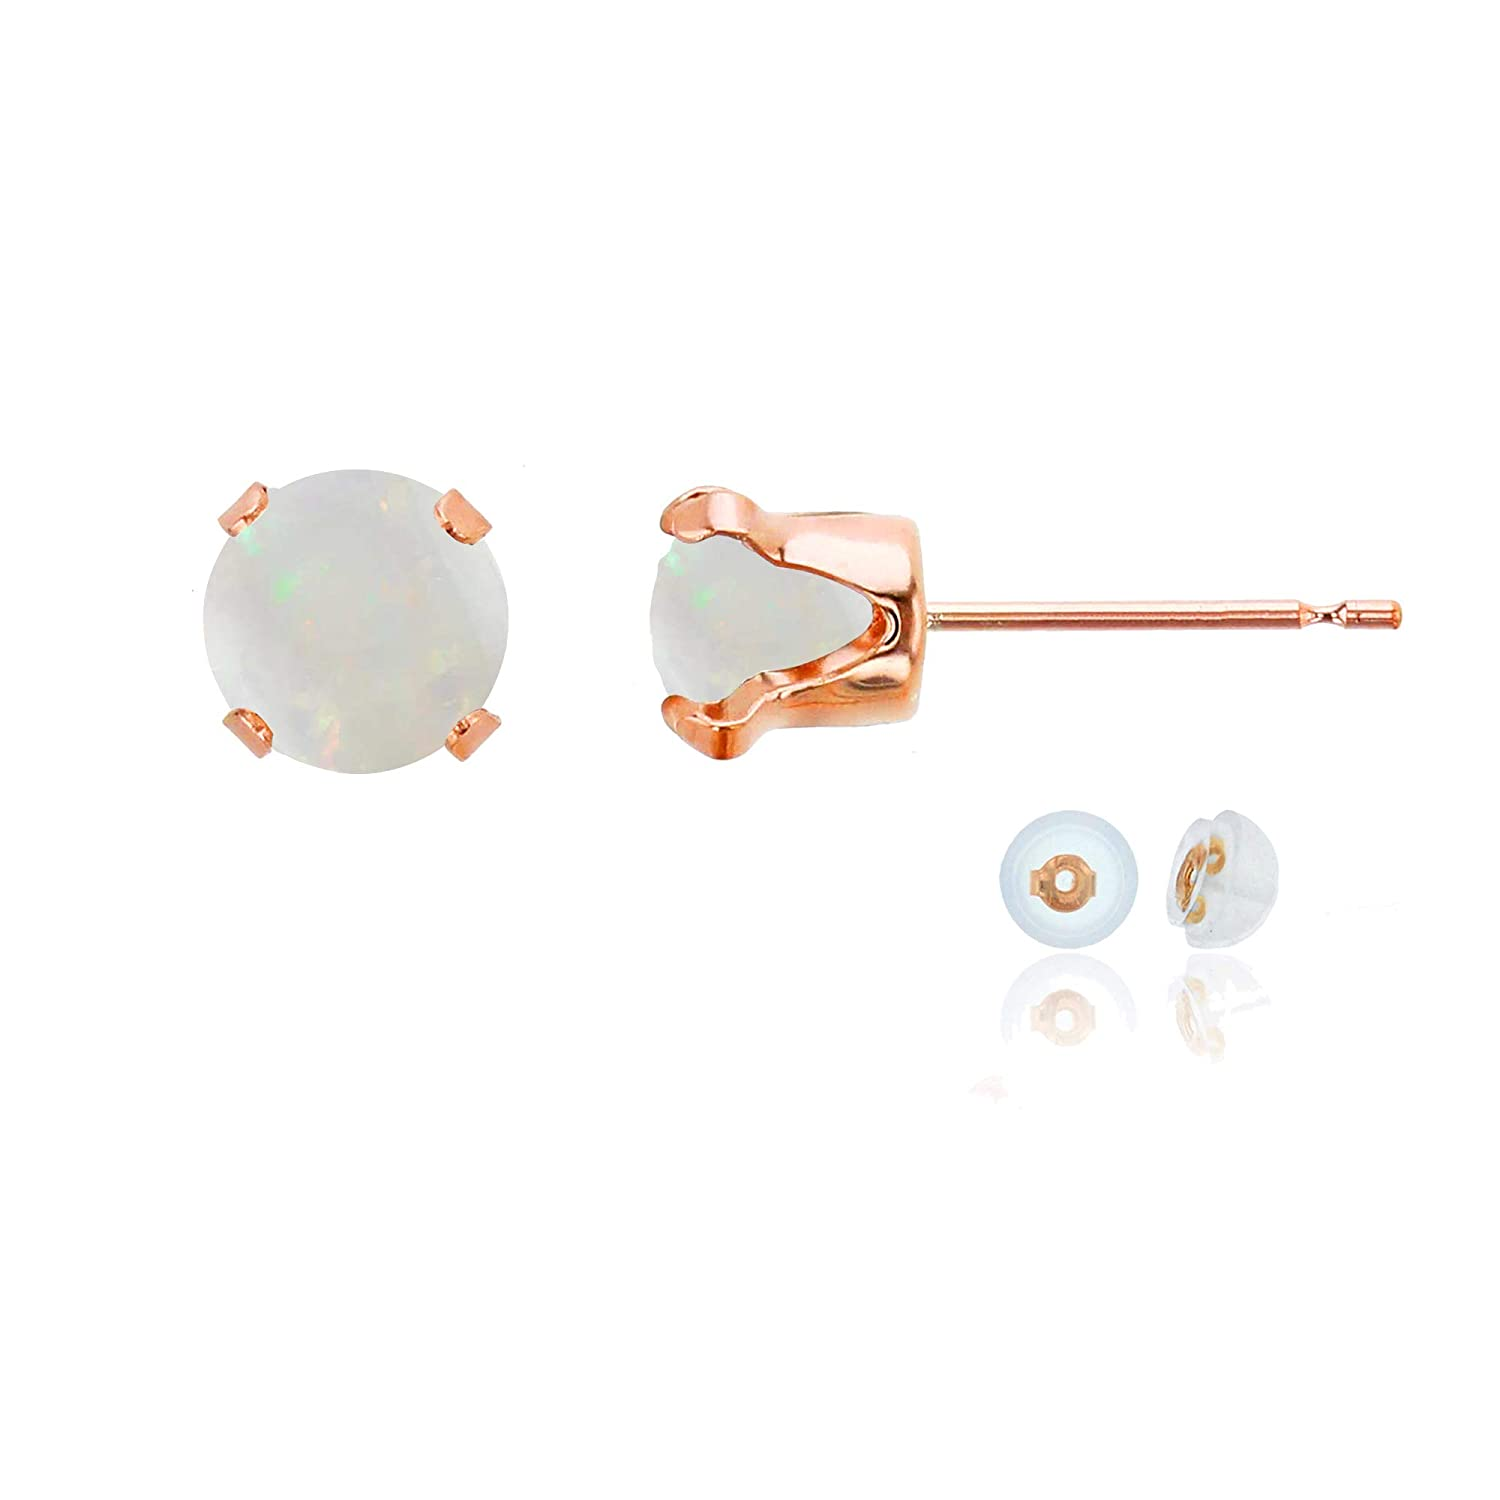 10K Rose Gold 6mm Round Gemstone Stud Earring with Silicone Back Decadence